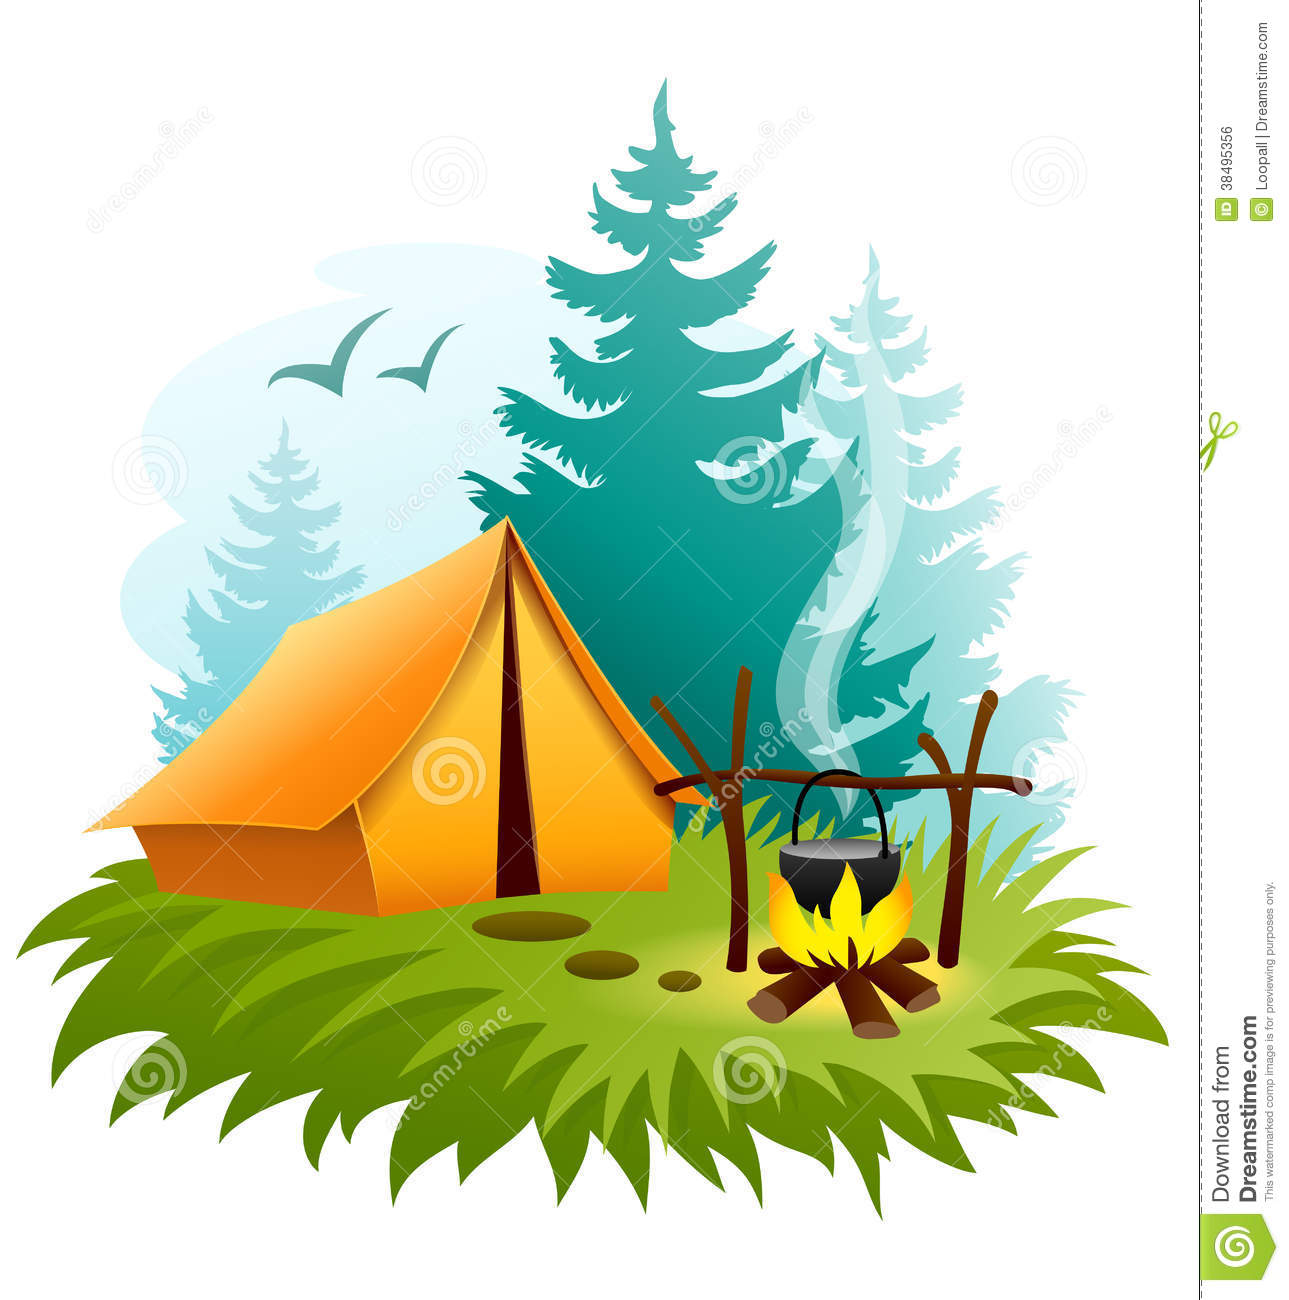 1289x1300 Camping Scenes Clipart